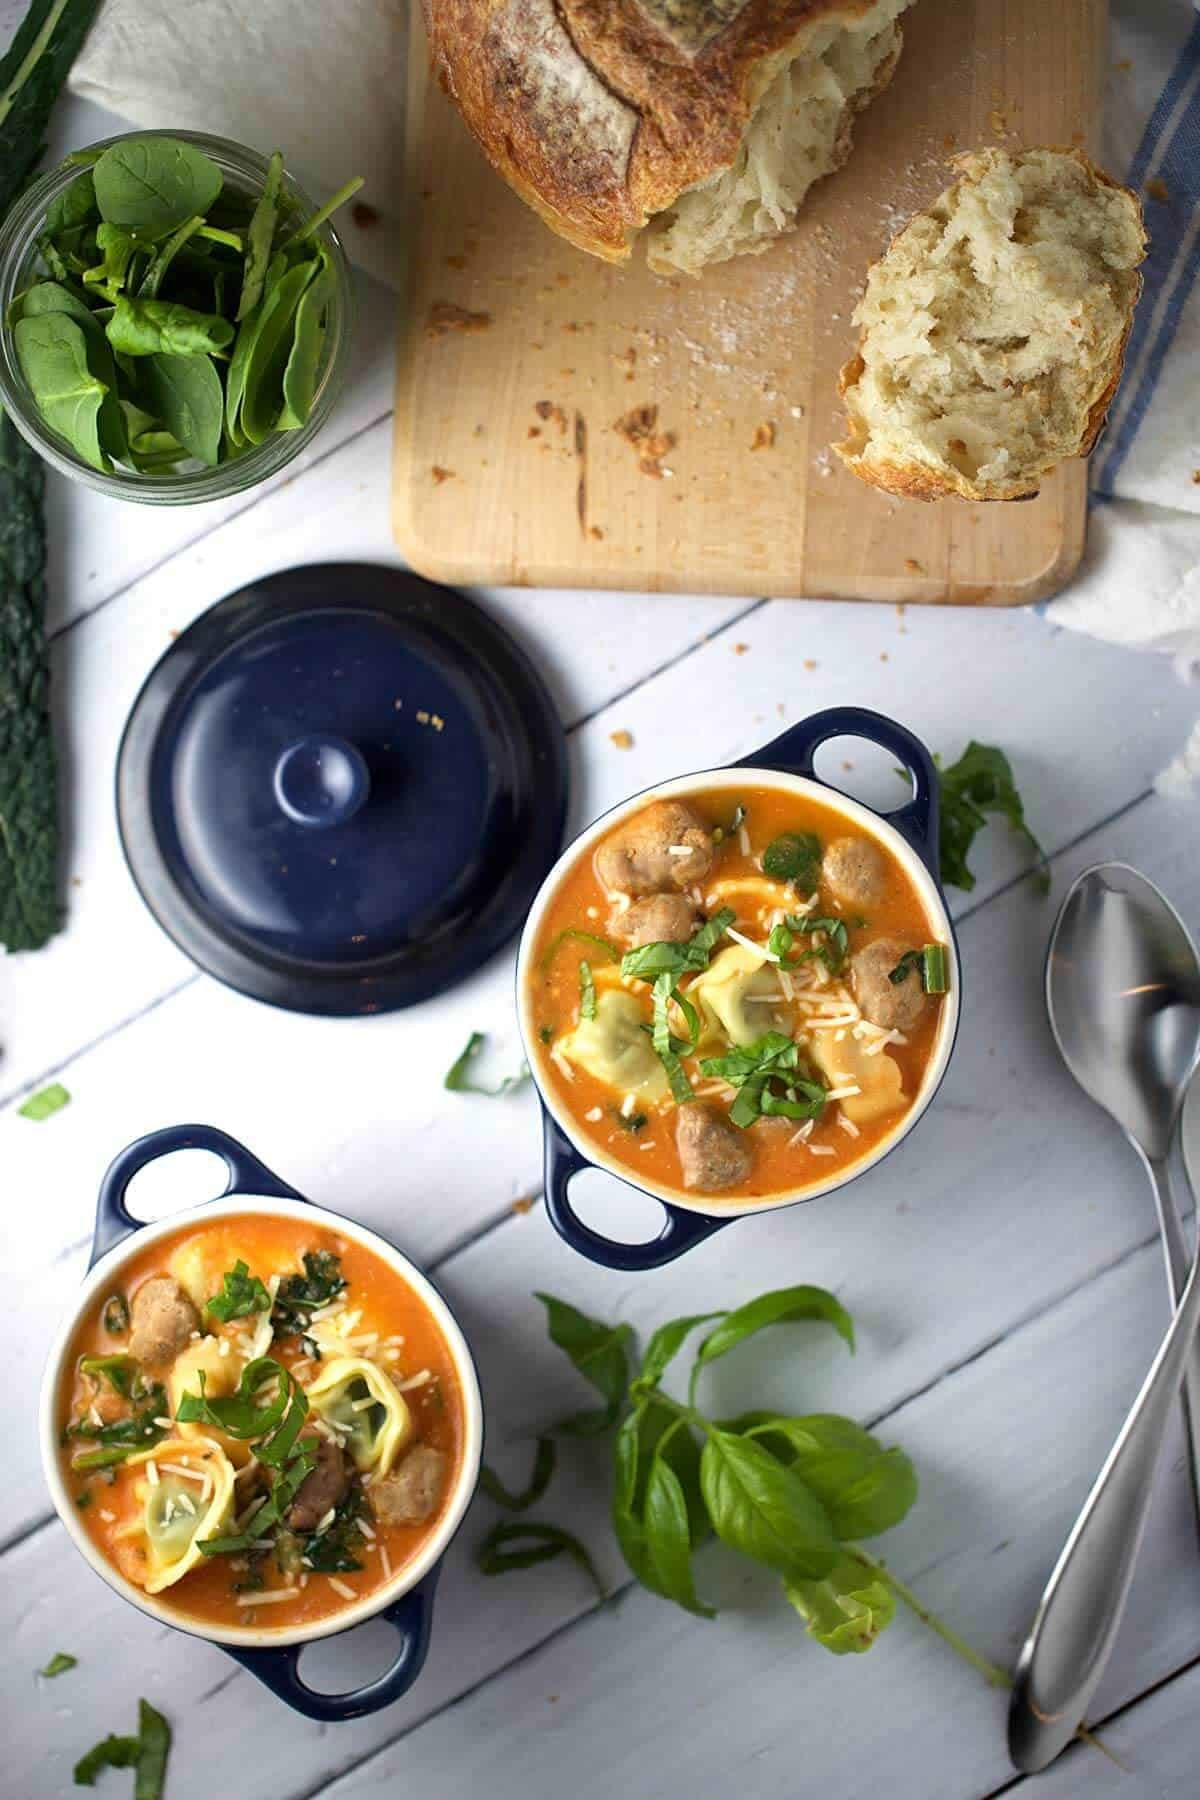 Tuscan tomato tortellini soup with Italian sausage - One of my favorite recipes, a hearty meal served with cheese and spinach pasta. | jessicagavin.com